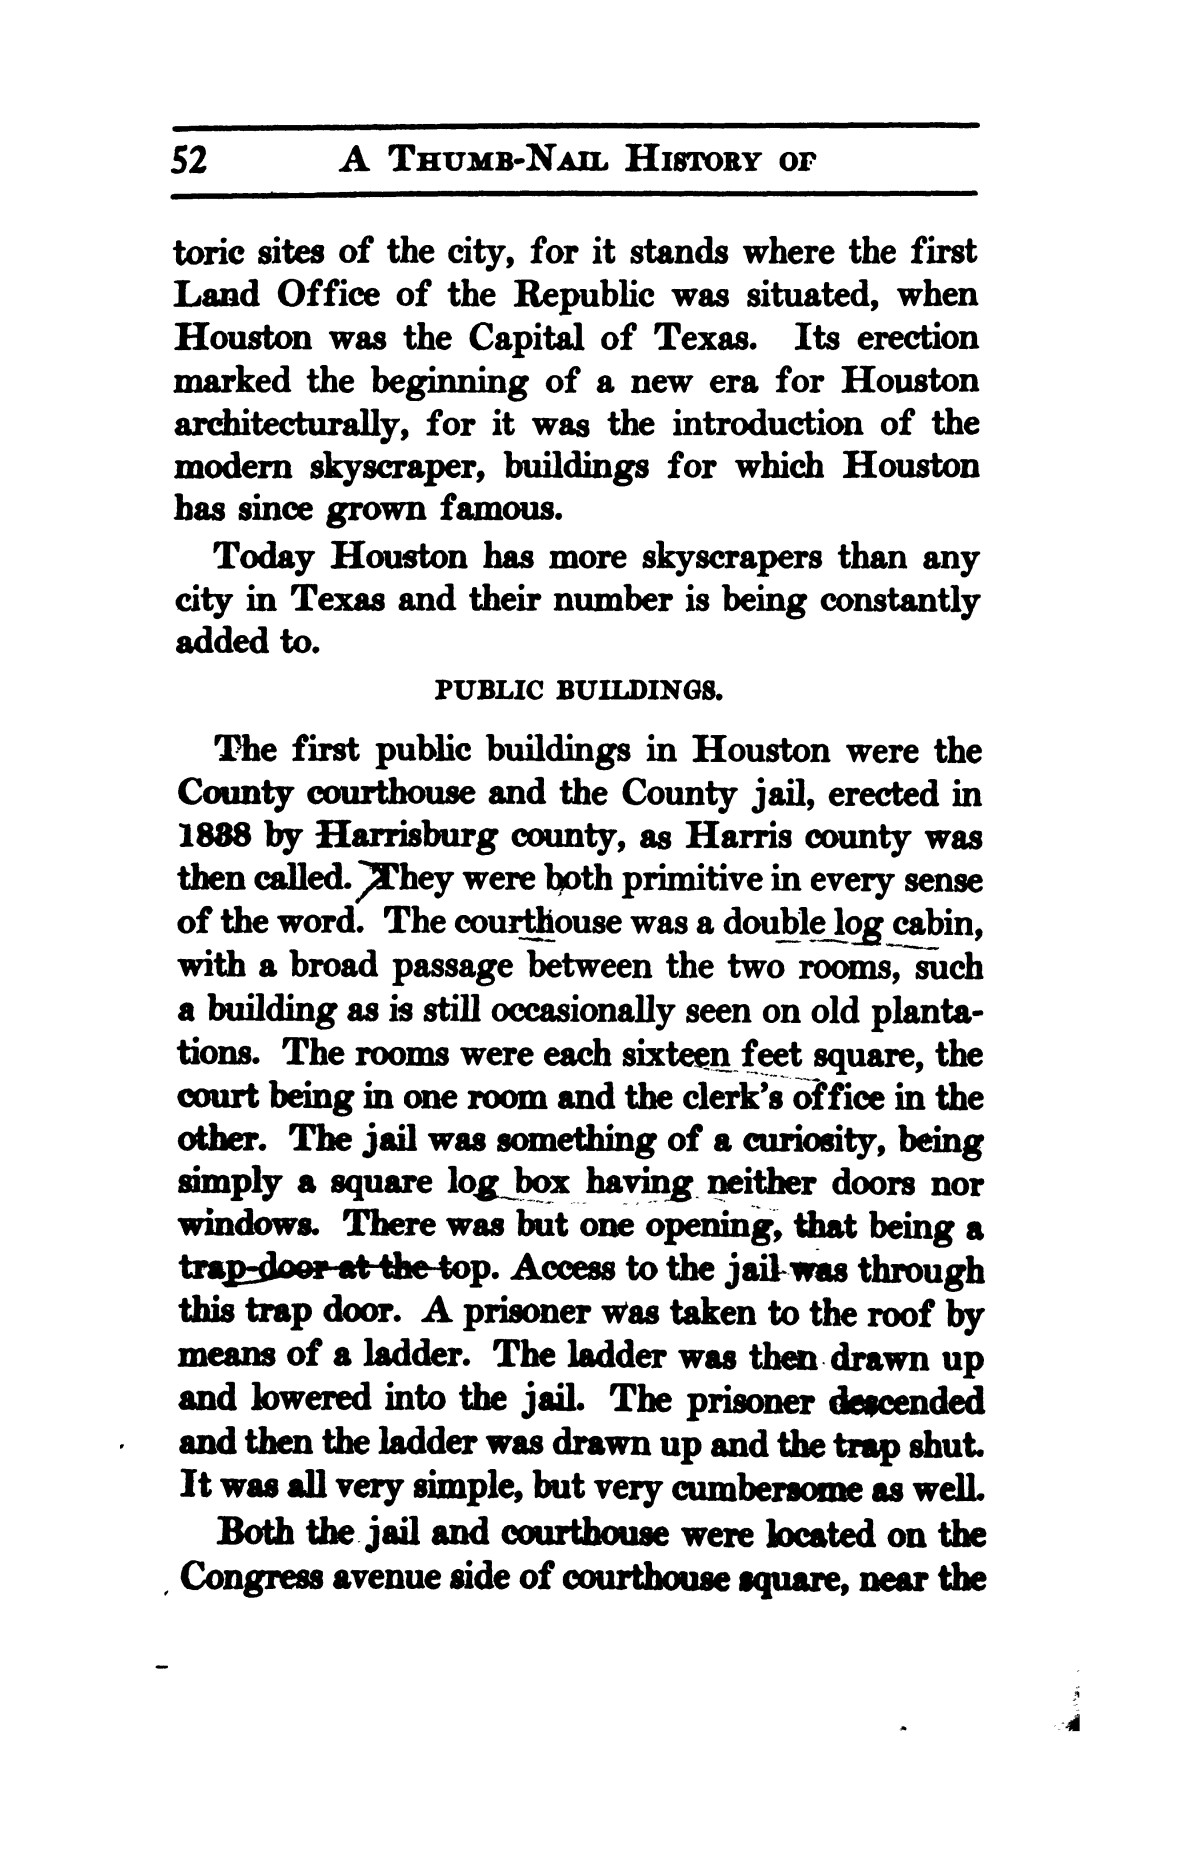 A thumb-nail history of the city of Houston, Texas, from its founding in 1836 to the year 1912                                                                                                      52